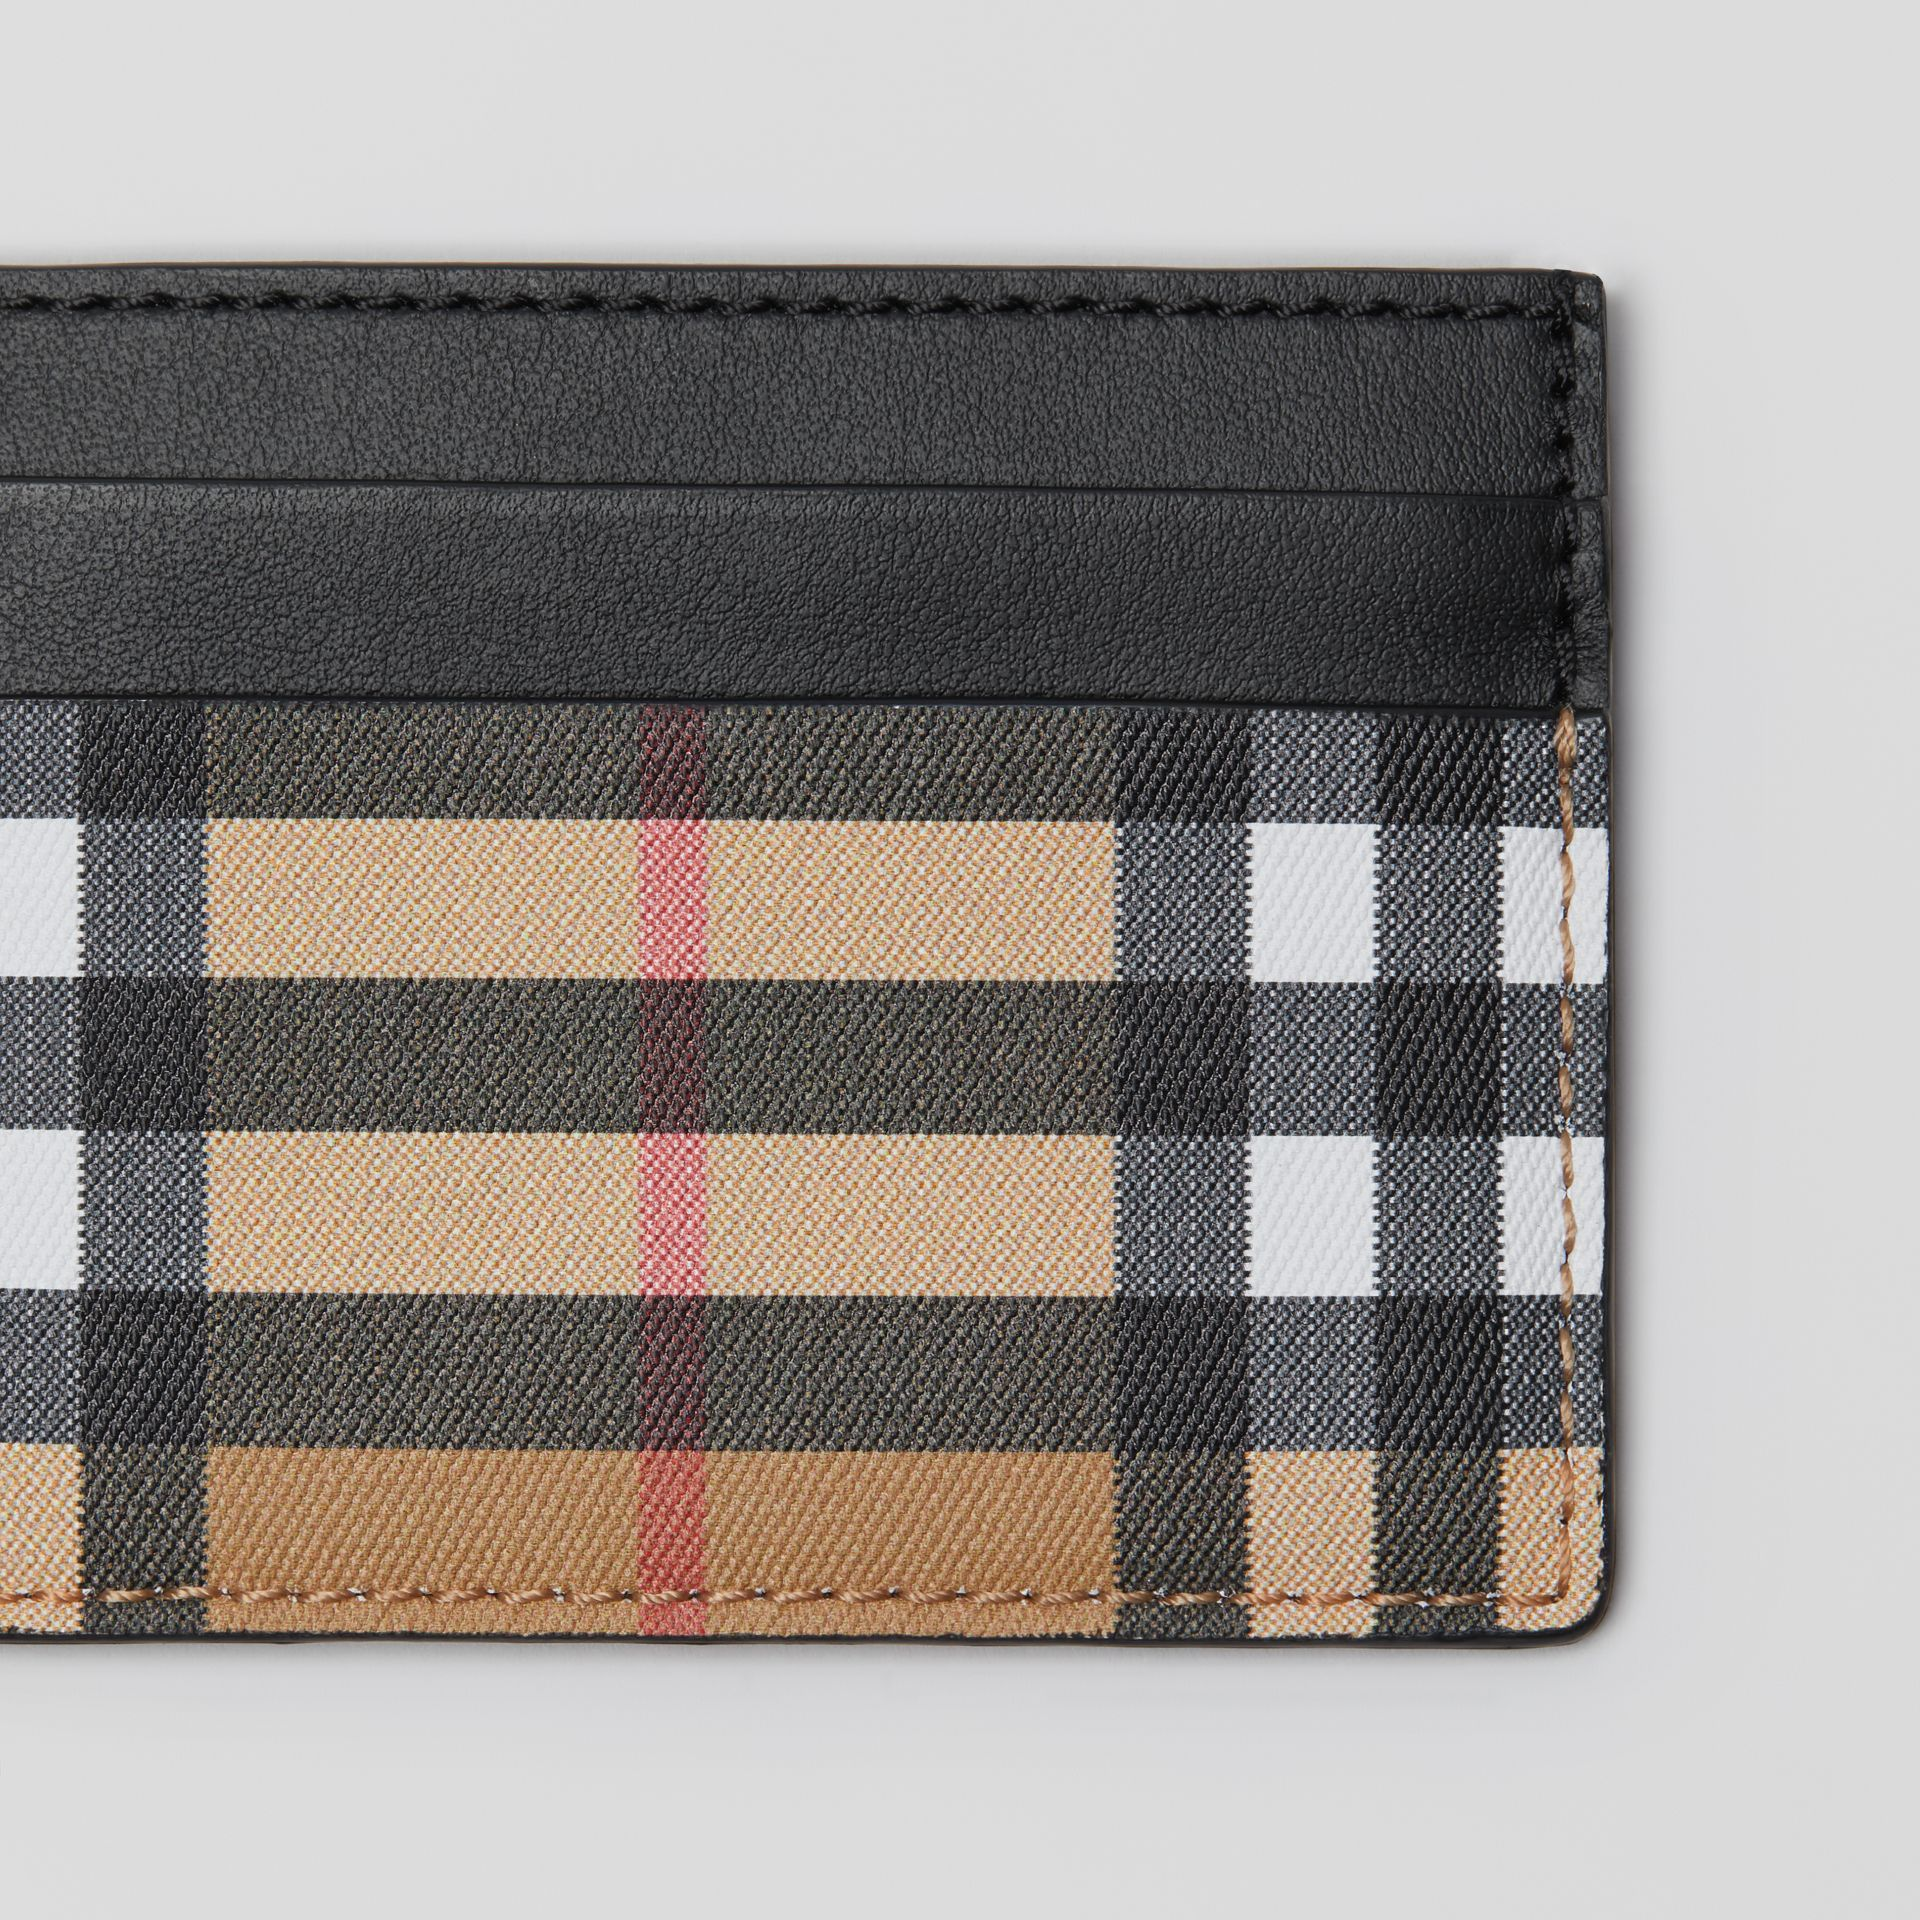 Vintage Check Leather Card Case in Black | Burberry Australia - gallery image 1